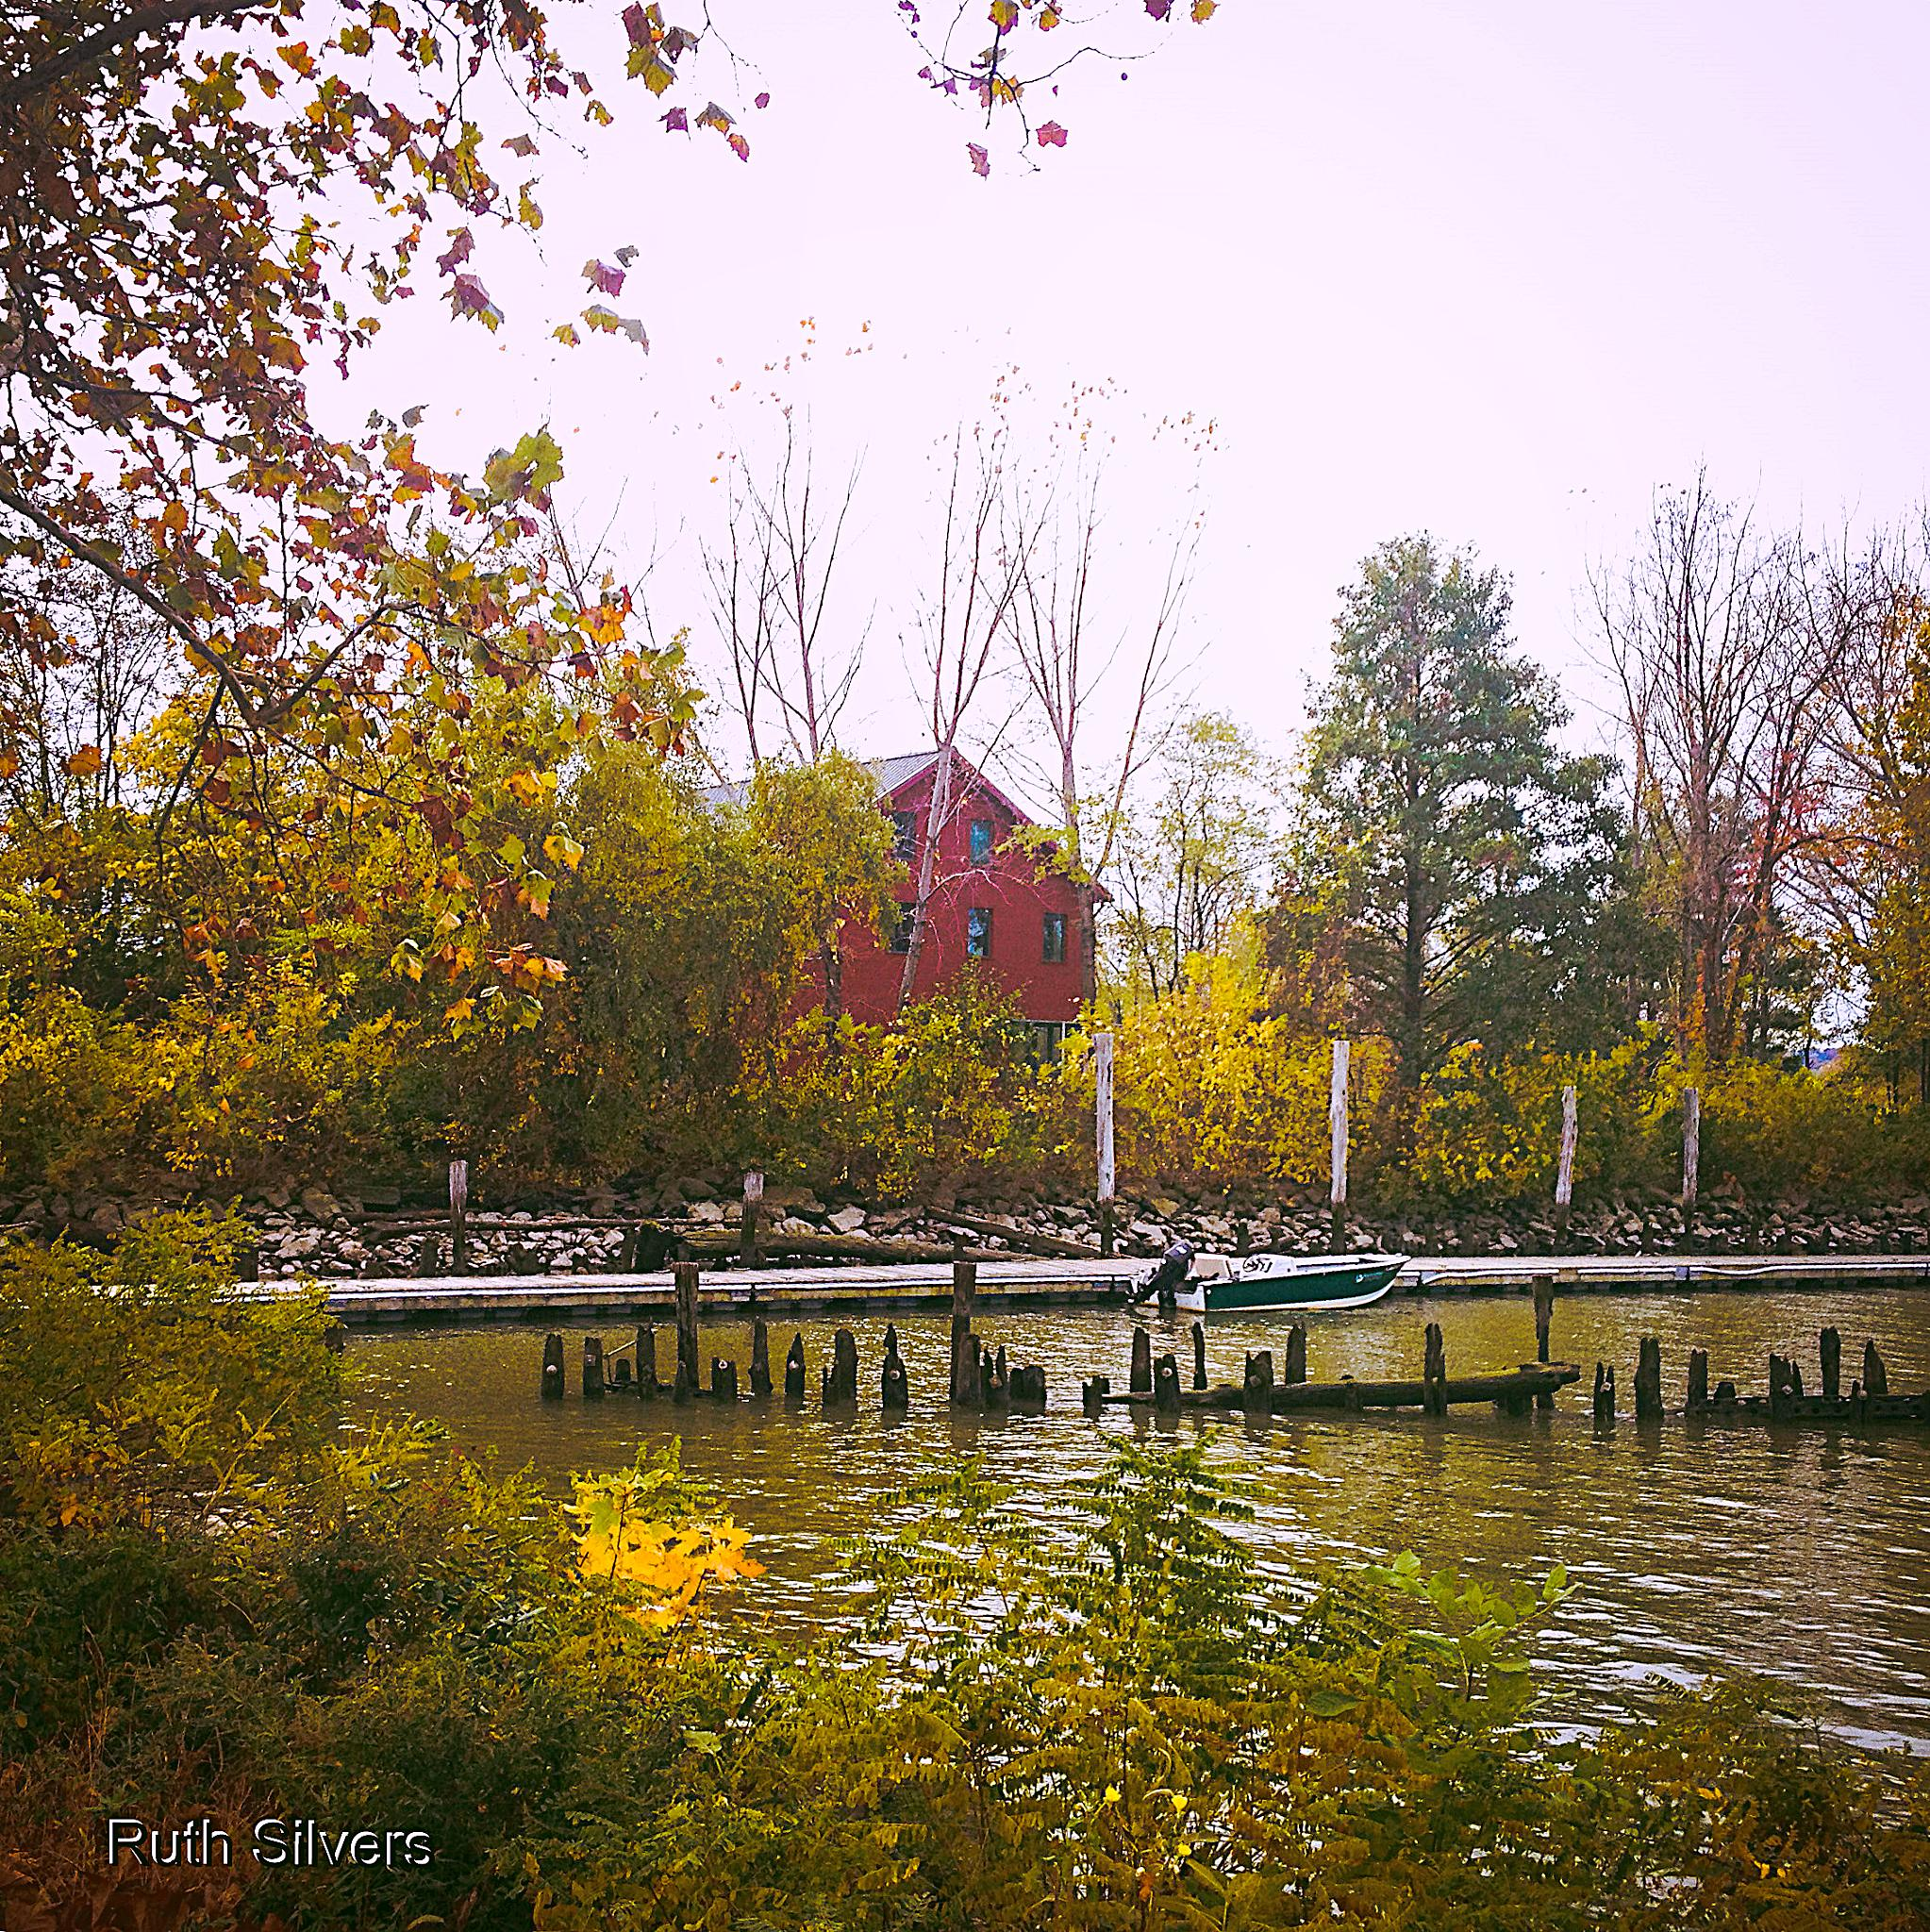 Fall scene by the river by Ruth Silvers